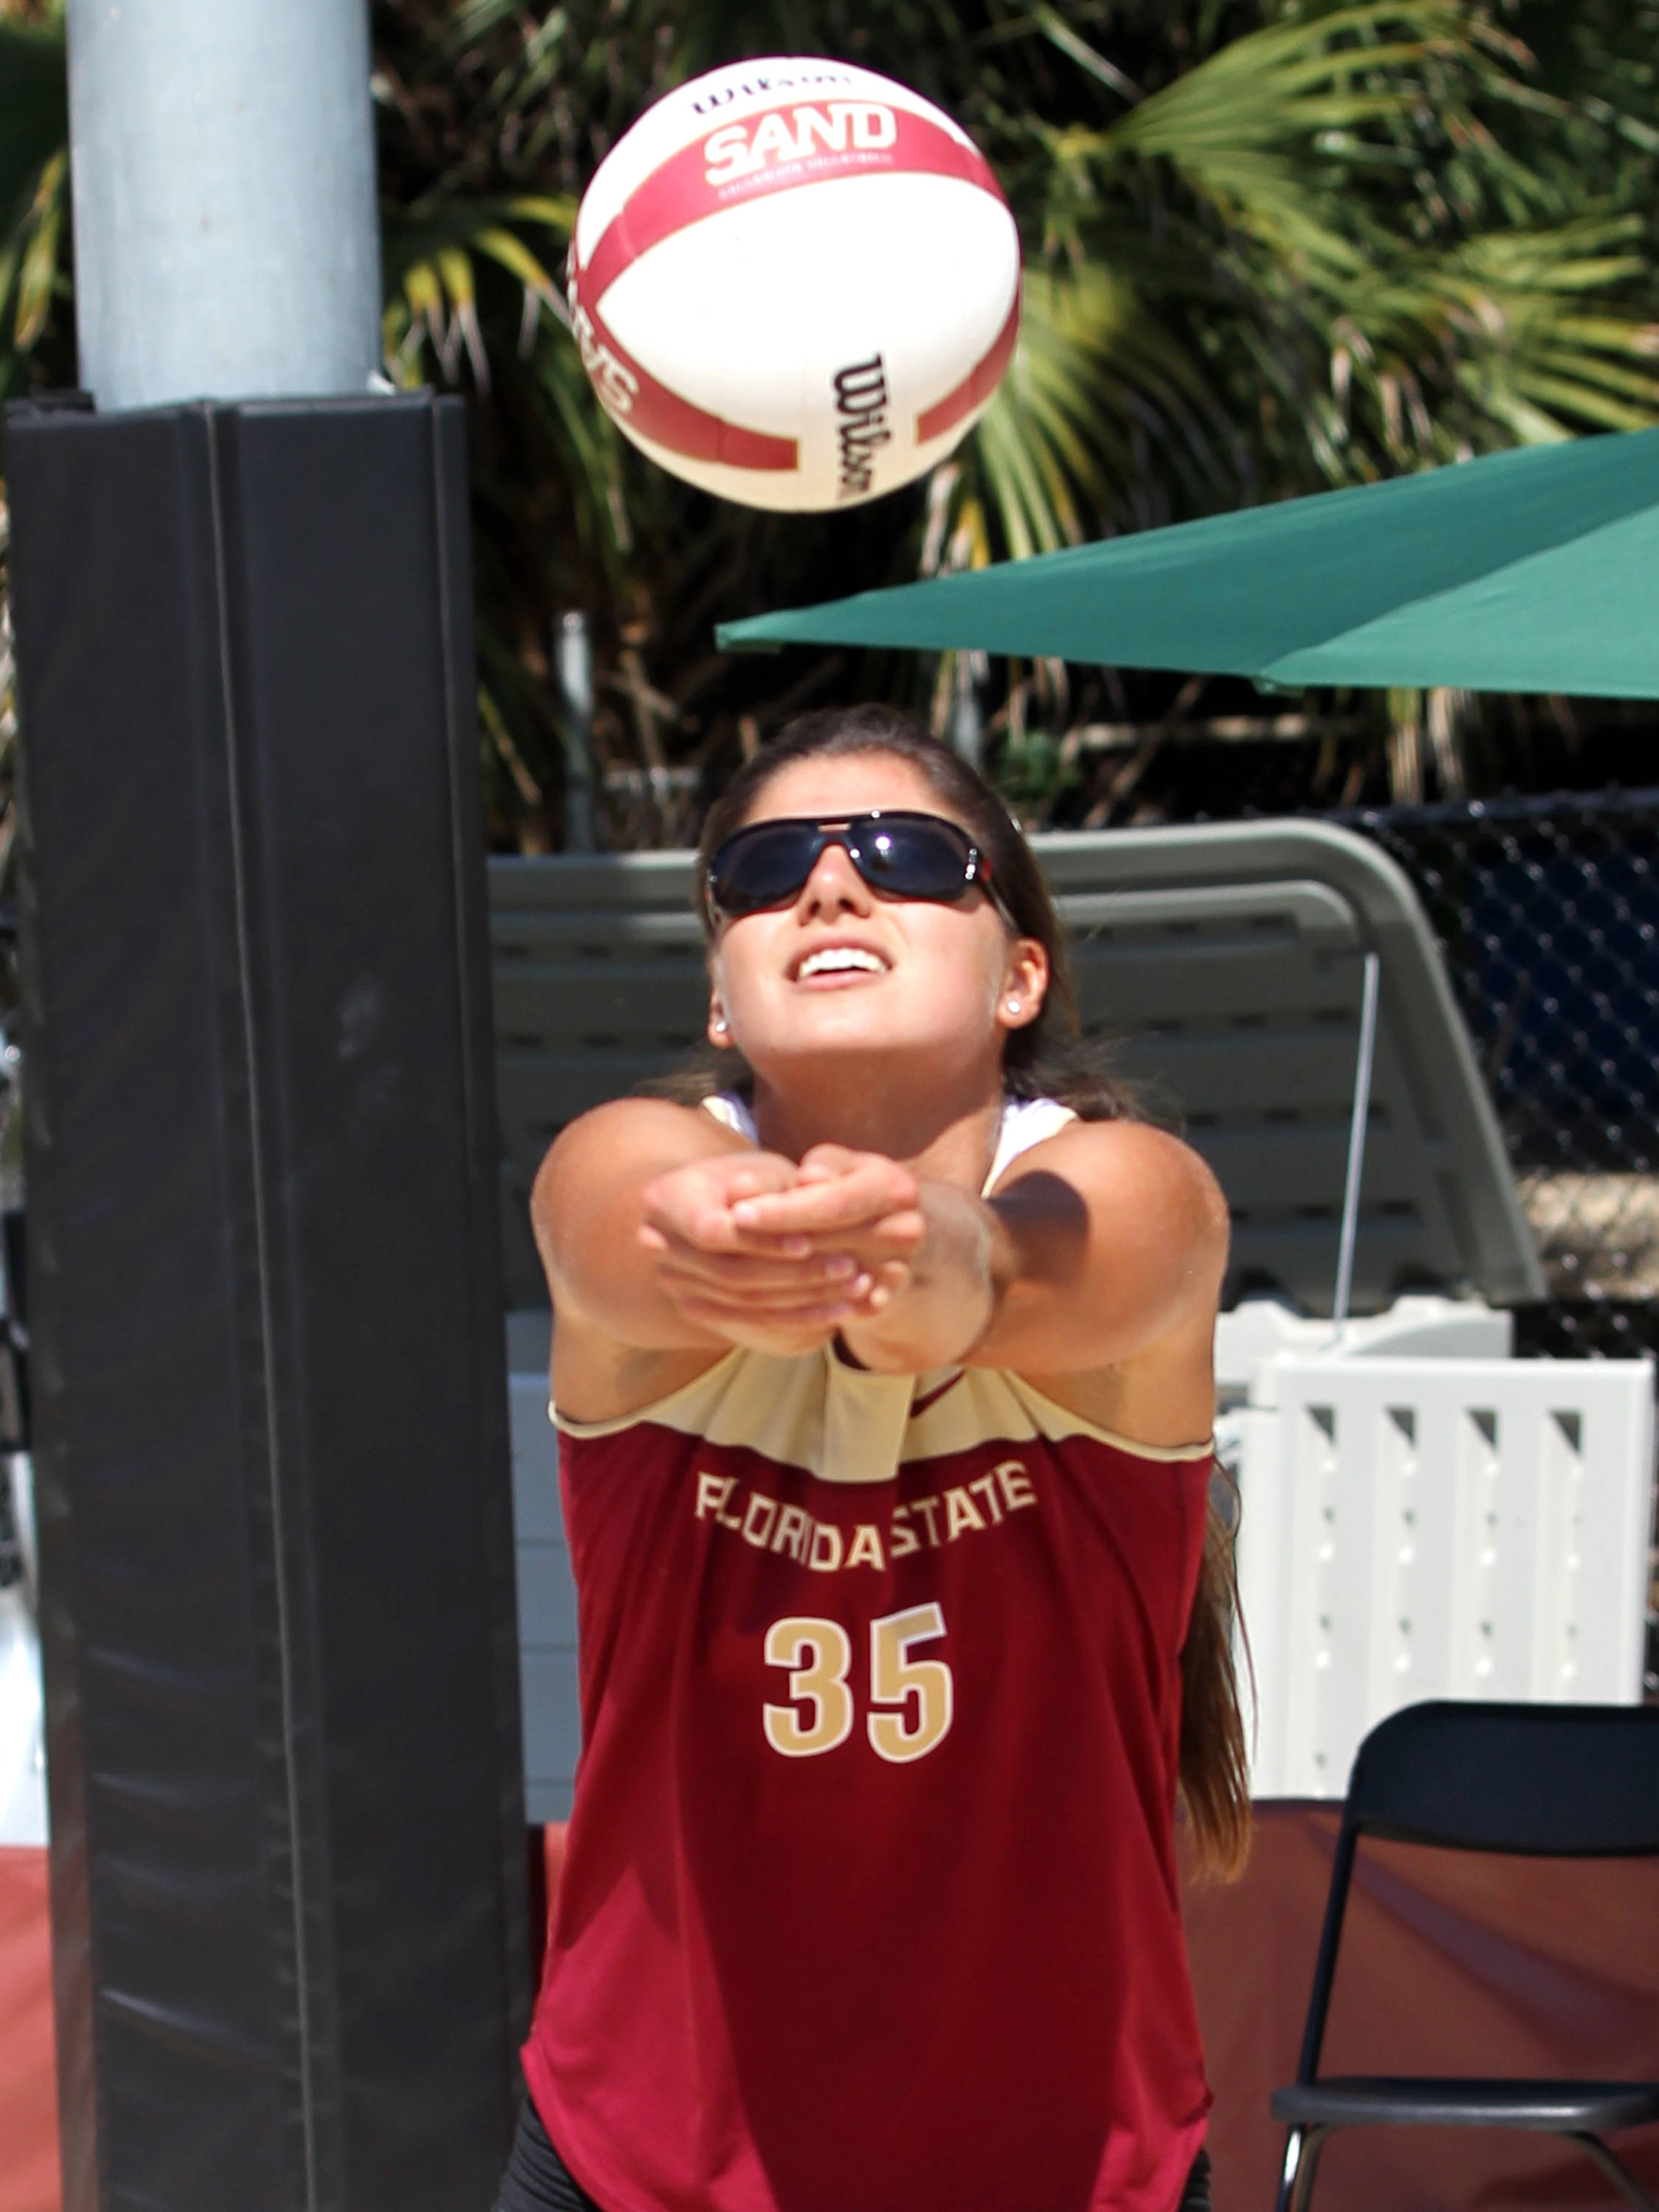 Olivera Medic, Sand Volleyball Tournament,  04/20/13 . (Photo by Steve Musco)